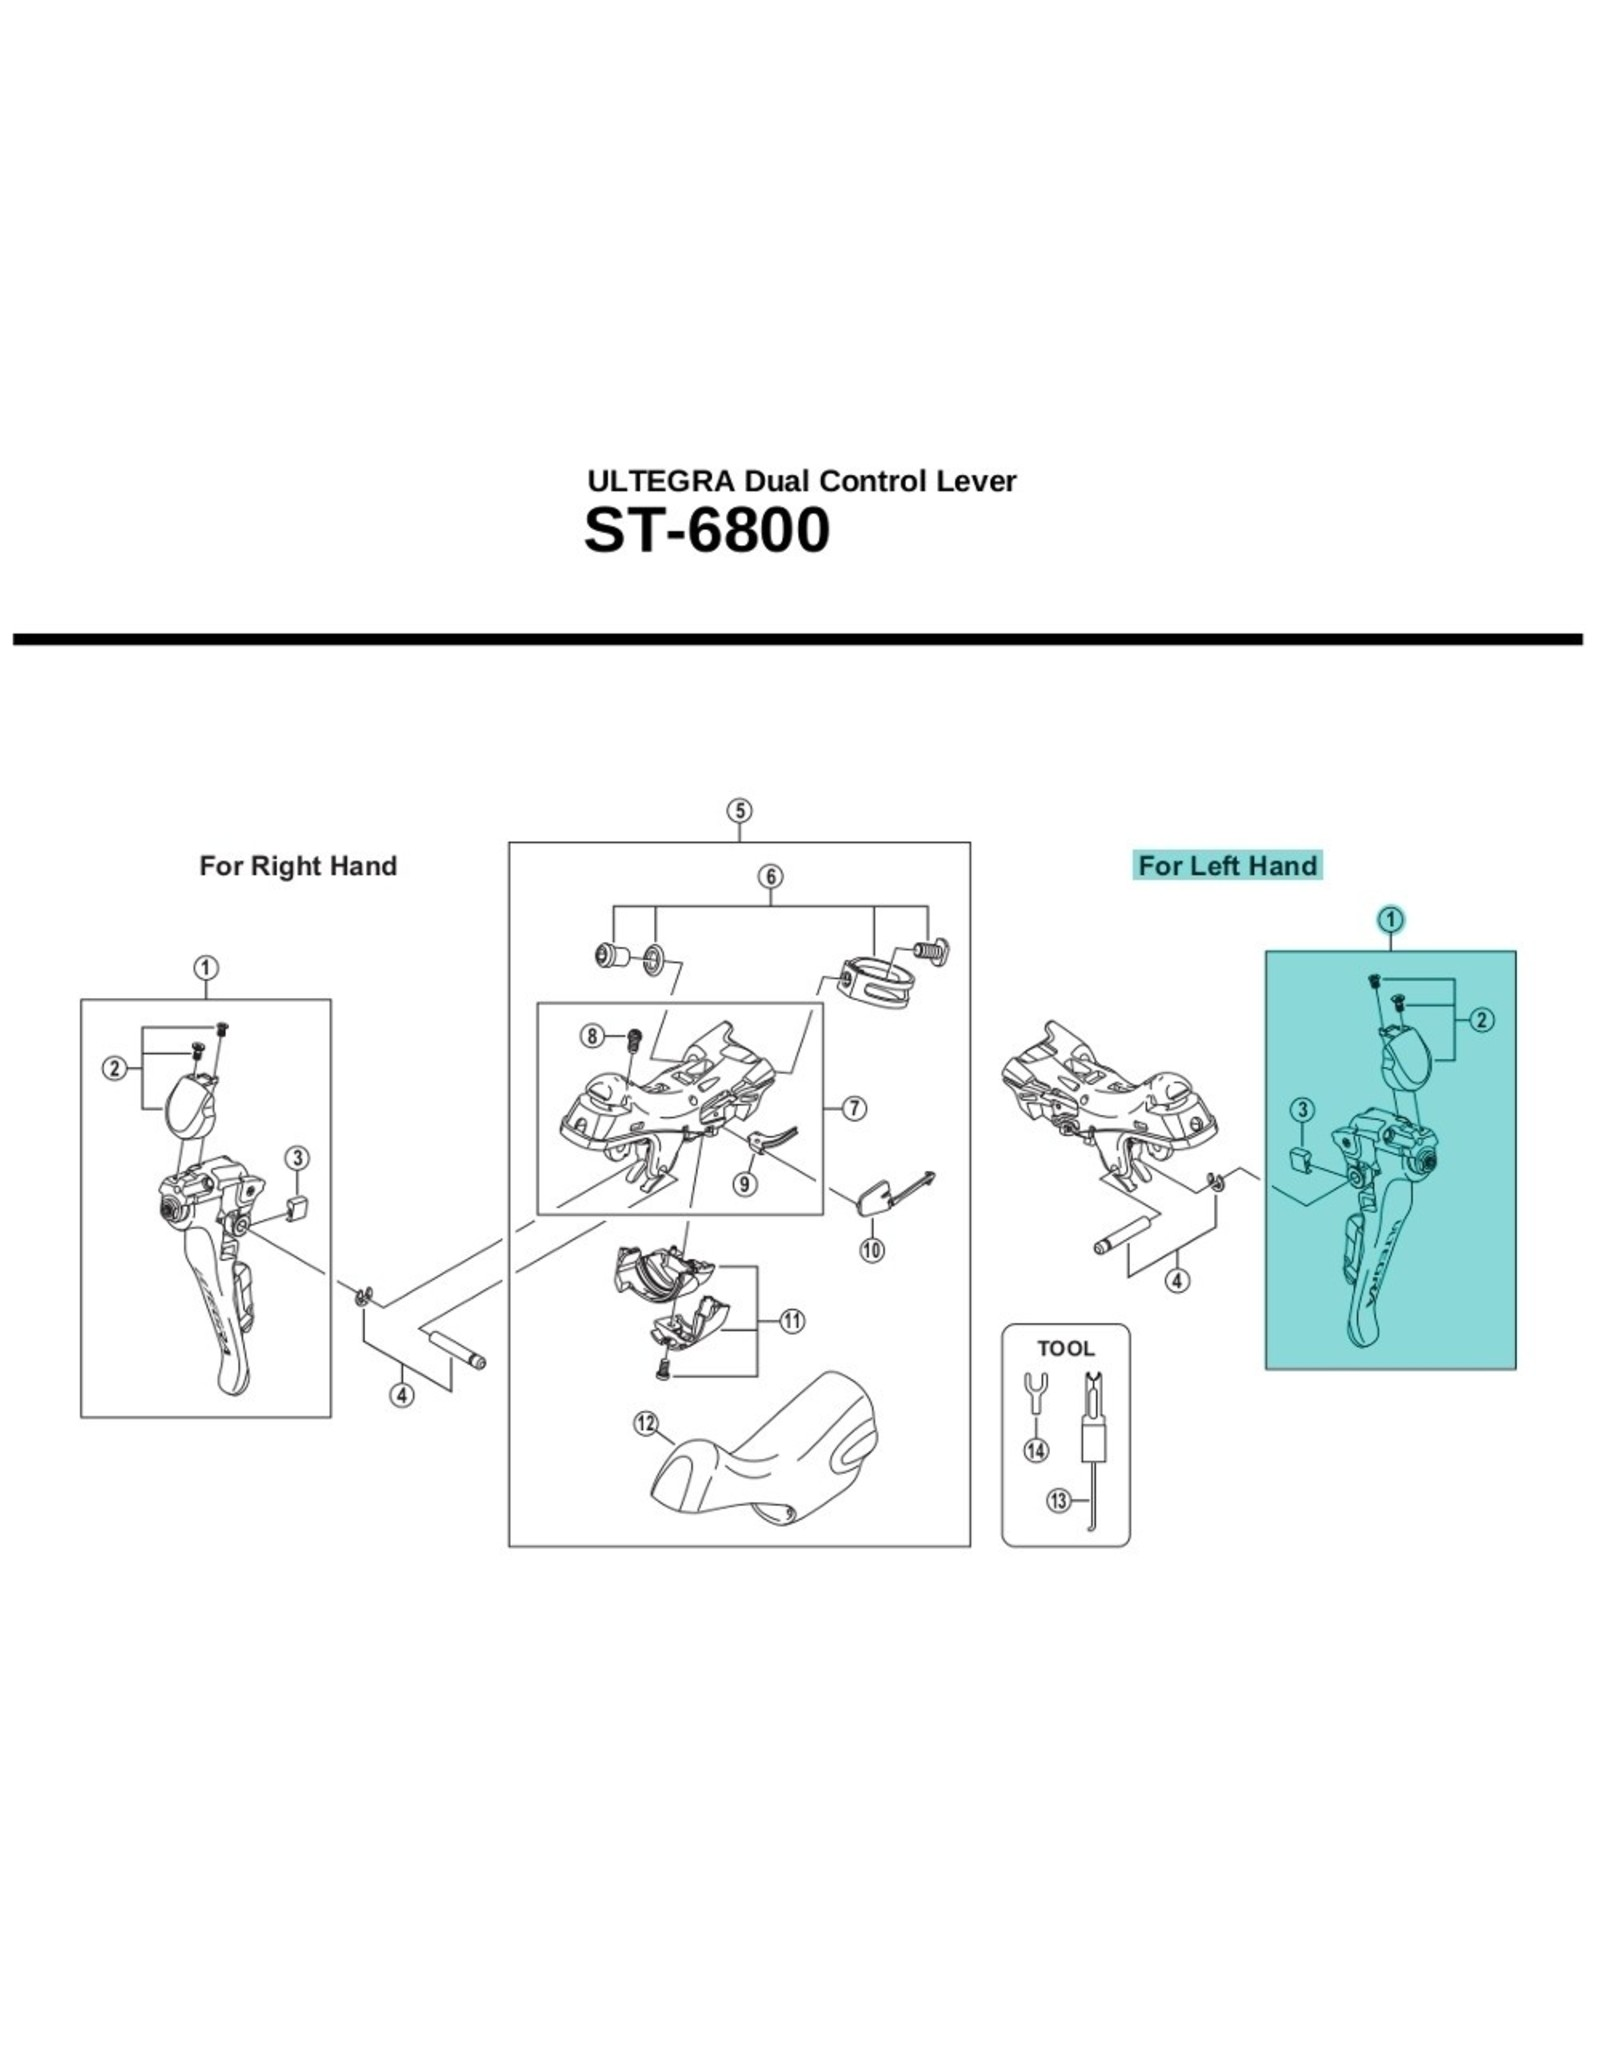 SHIMANO ST-6800 left hand main lever assembly